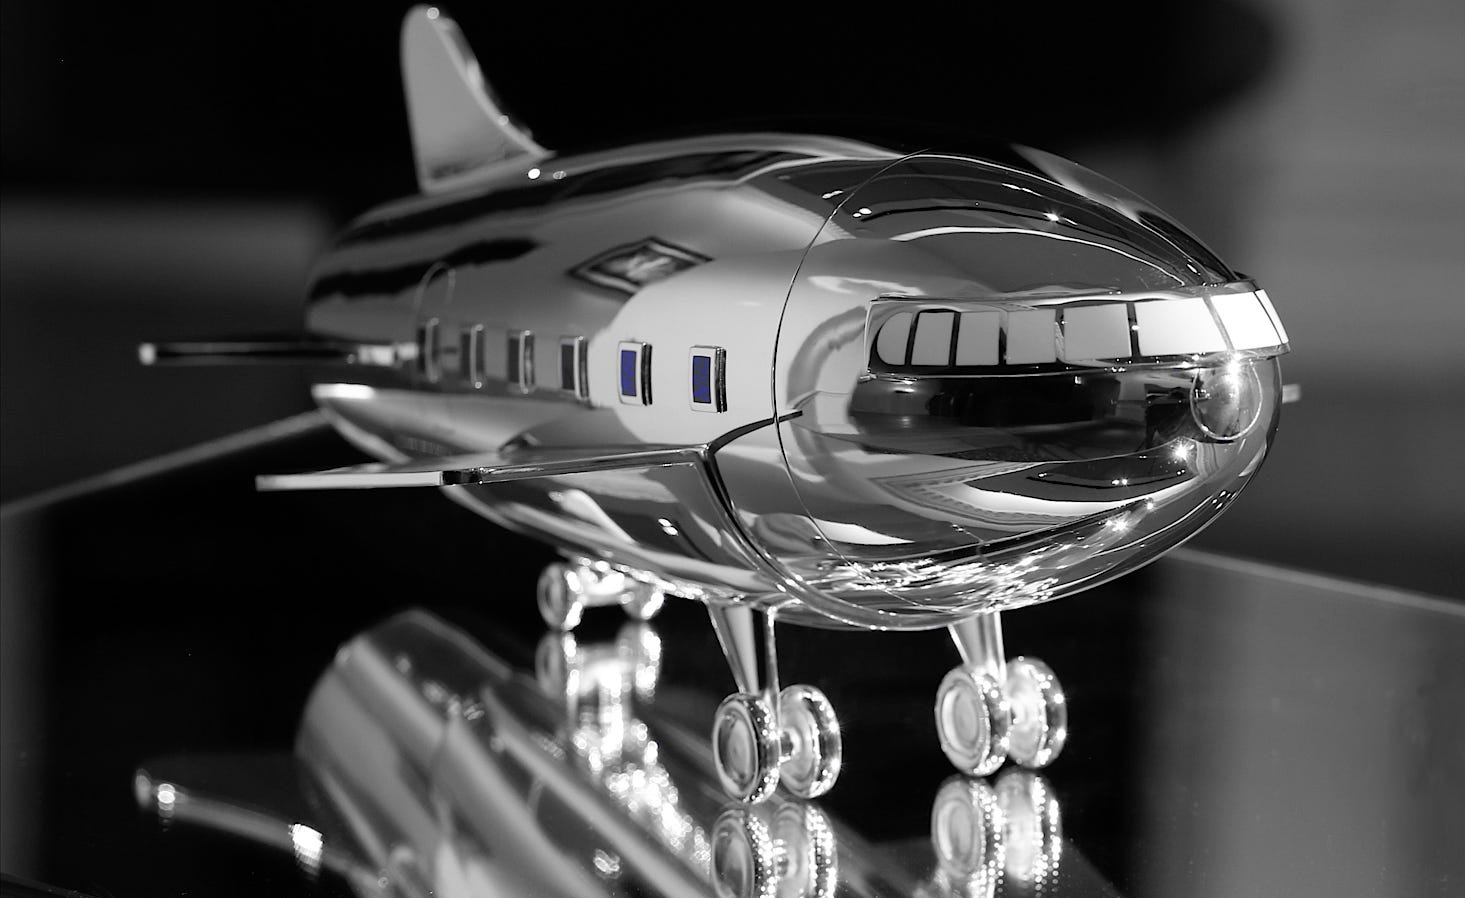 The Asprey Aeroplane cocktail shaker in its finished form